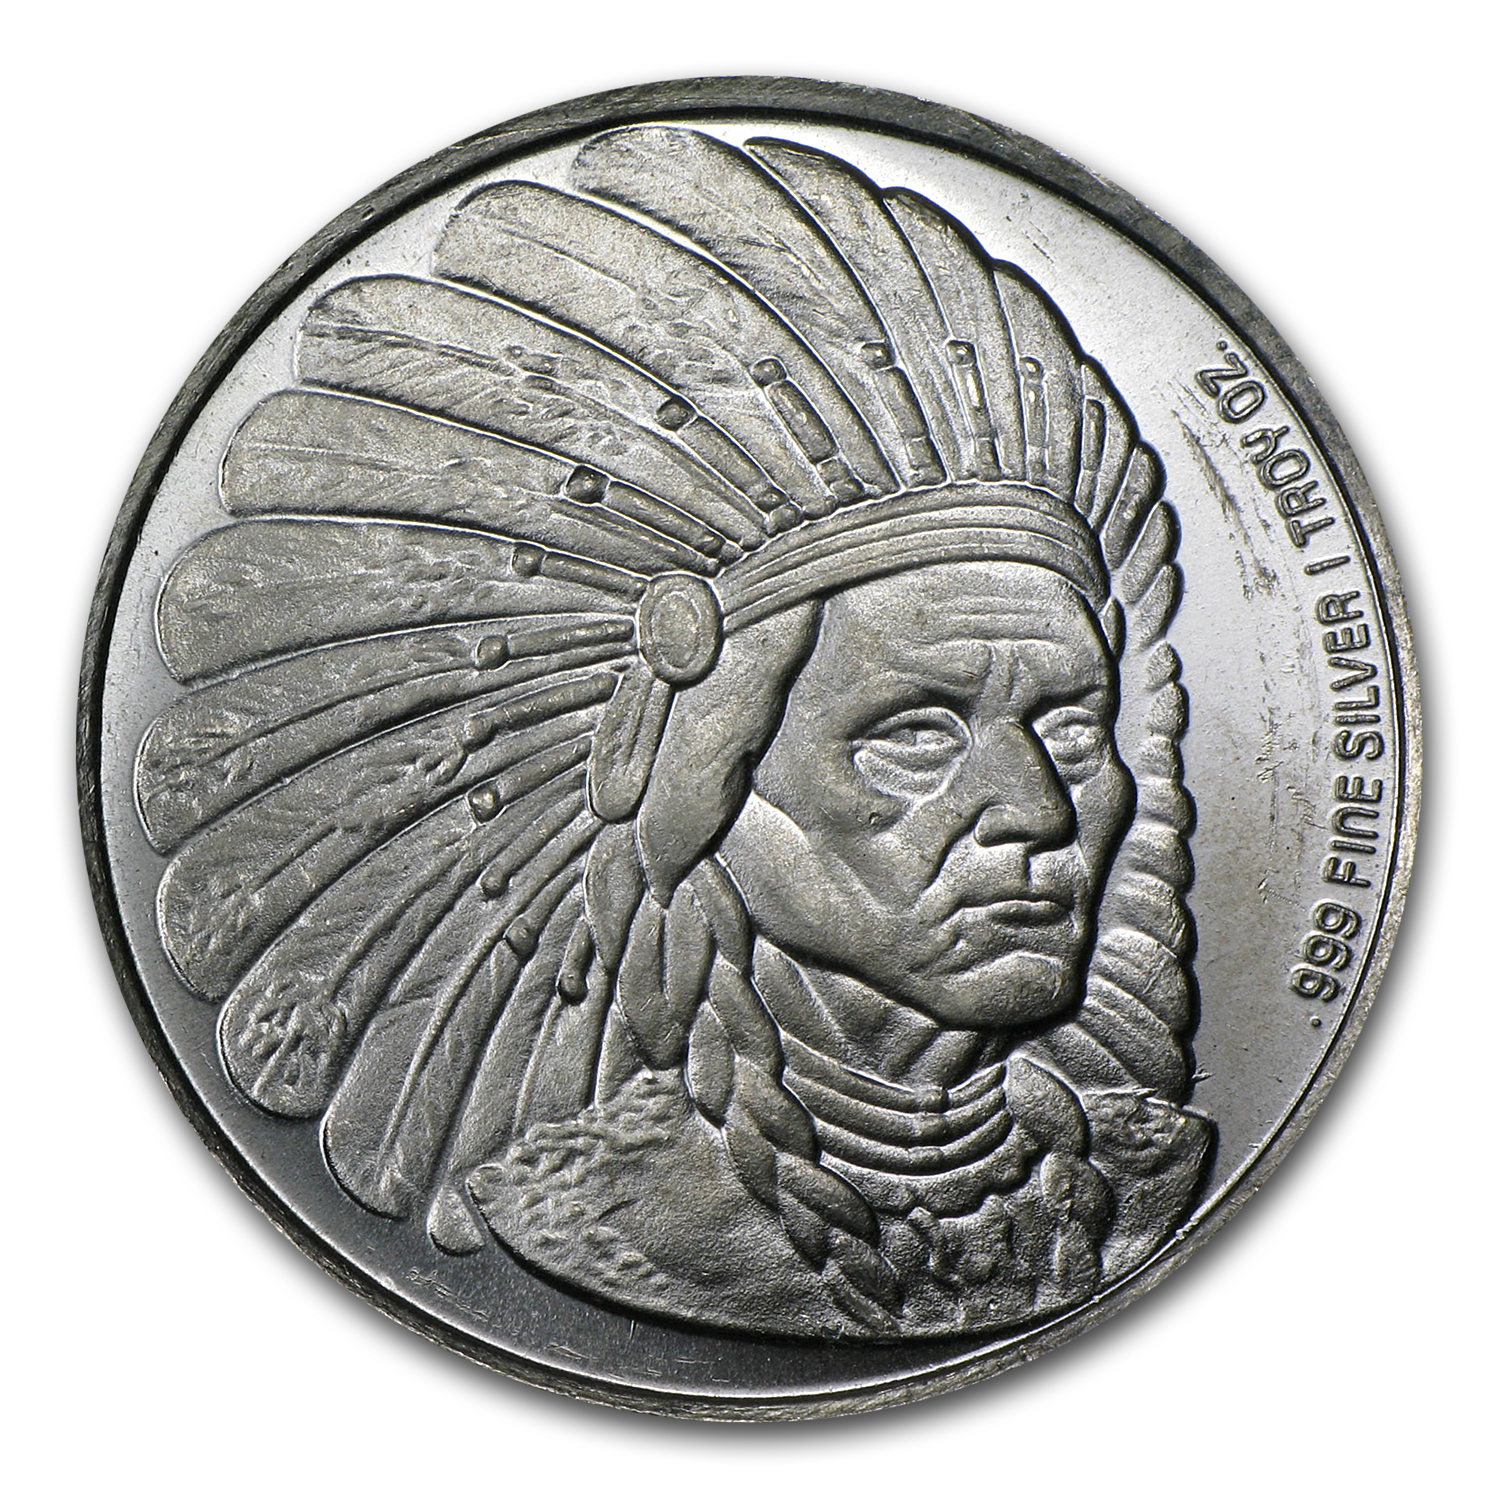 1 oz Silver Round - Native American Chief